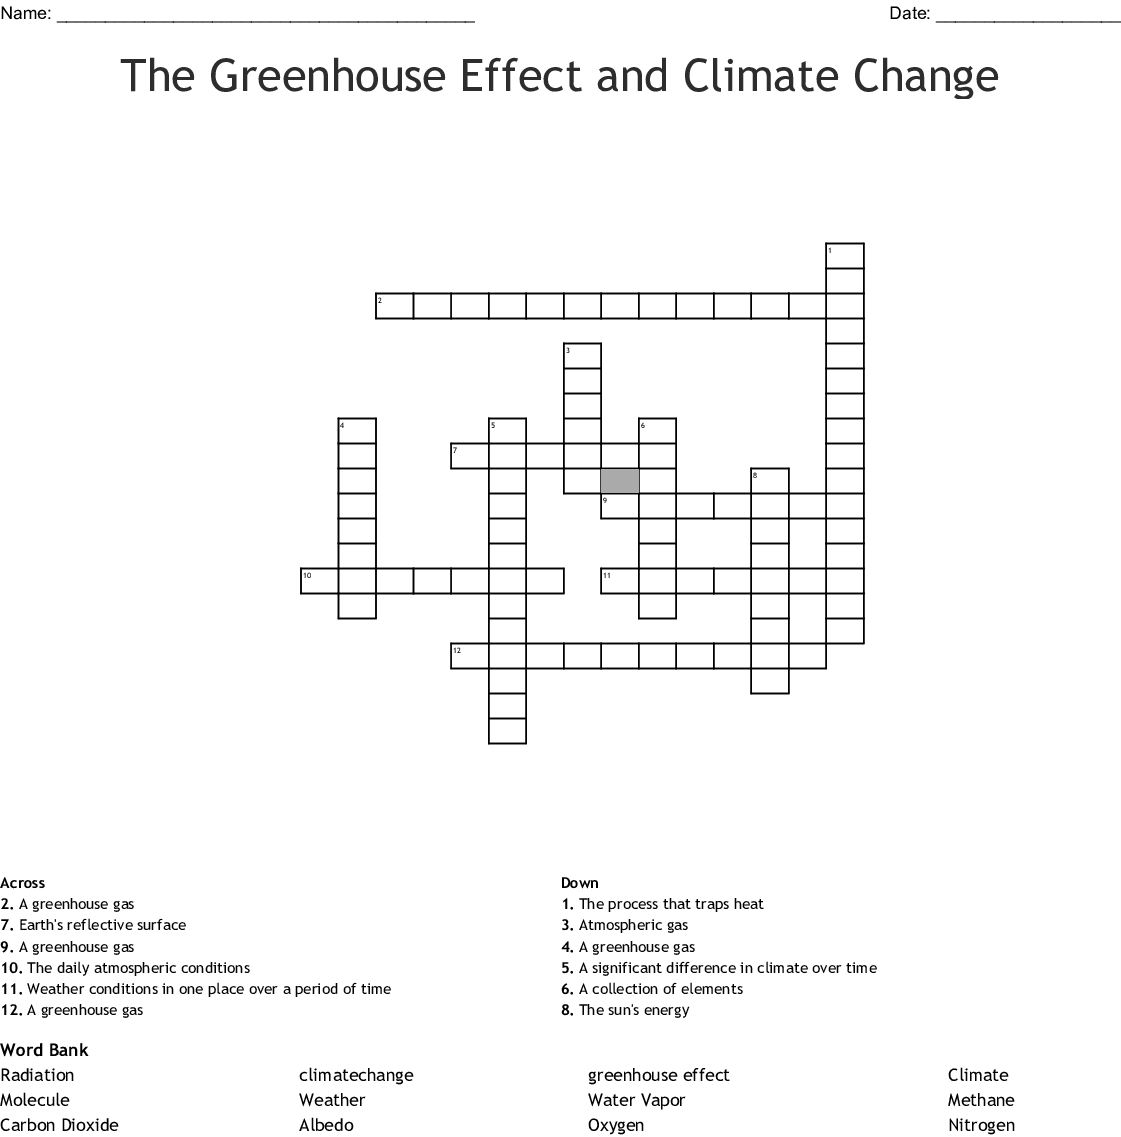 The Greenhouse Effect And Climate Change Crossword